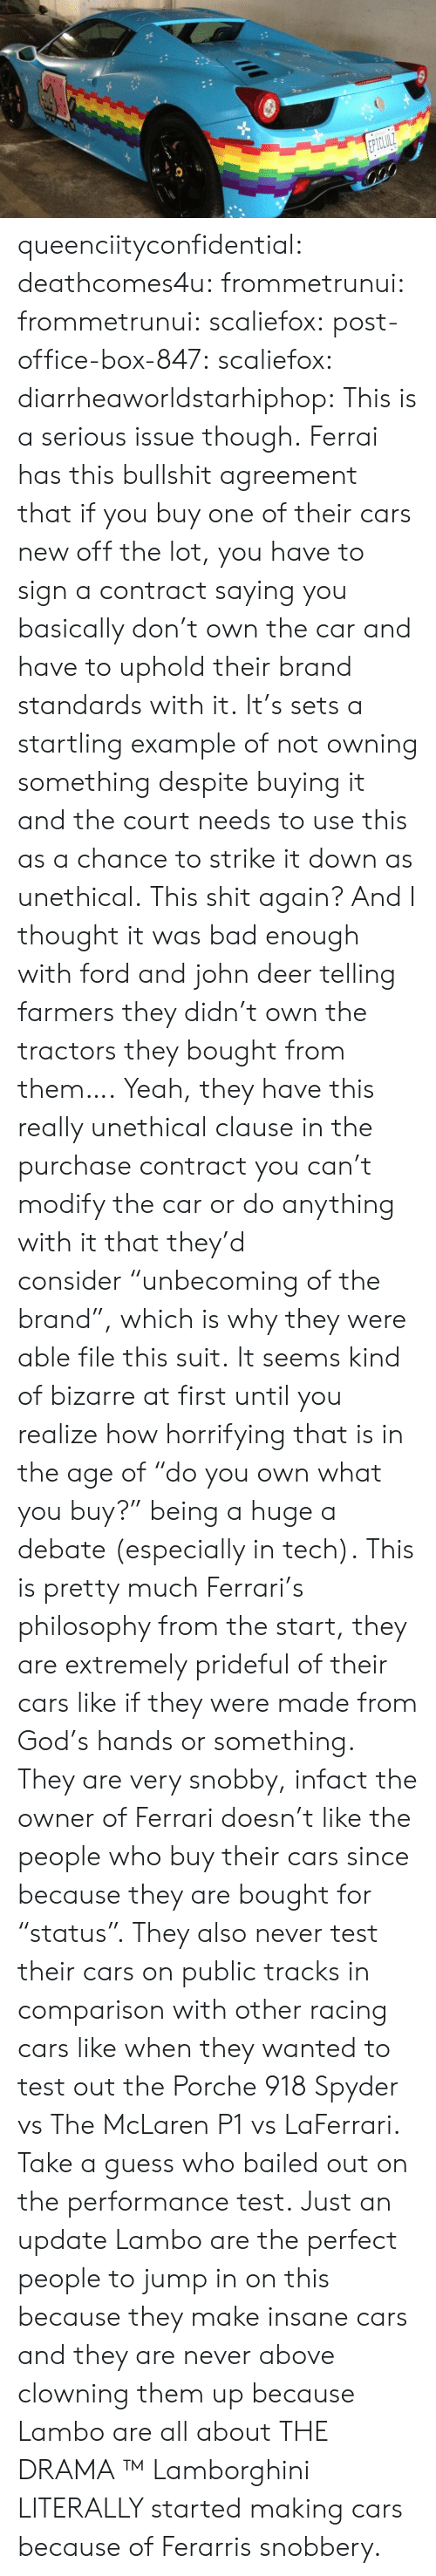 "Bailed Out: queenciityconfidential:  deathcomes4u: frommetrunui:  frommetrunui:  scaliefox:  post-office-box-847:  scaliefox:  diarrheaworldstarhiphop:  This is a serious issue though. Ferrai has this bullshit agreement that if you buy one of their cars new off the lot, you have to sign a contract saying you basically don't own the car and have to uphold their brand standards with it. It's sets a startling example of not owning something despite buying it and the court needs to use this as a chance to strike it down as unethical.  This shit again? And I thought it was bad enough with ford and john deer telling farmers they didn't own the tractors they bought from them….  Yeah, they have this really unethical clause in the purchase contract you can't modify the car or do anything with it that they'd consider ""unbecoming of the brand"", which is why they were able file this suit. It seems kind of bizarre at first until you realize how horrifying that is in the age of ""do you own what you buy?"" being a huge a debate (especially in tech).  This is pretty much Ferrari's philosophy from the start, they are extremely prideful of their cars like if they were made from God's hands or something.  They are very snobby, infact the owner of Ferrari doesn't like the people who buy their cars since because they are bought for ""status"".  They also never test their cars on public tracks in comparison with other racing cars like when they wanted to test out the Porche 918 Spyder vs The McLaren P1 vs LaFerrari. Take a guess who bailed out on the performance test.  Just an update  Lambo are the perfect people to jump in on this because they make insane cars and they are never above clowning them up because Lambo are all about THE DRAMA ™  Lamborghini LITERALLY started making cars because of Ferarris snobbery."